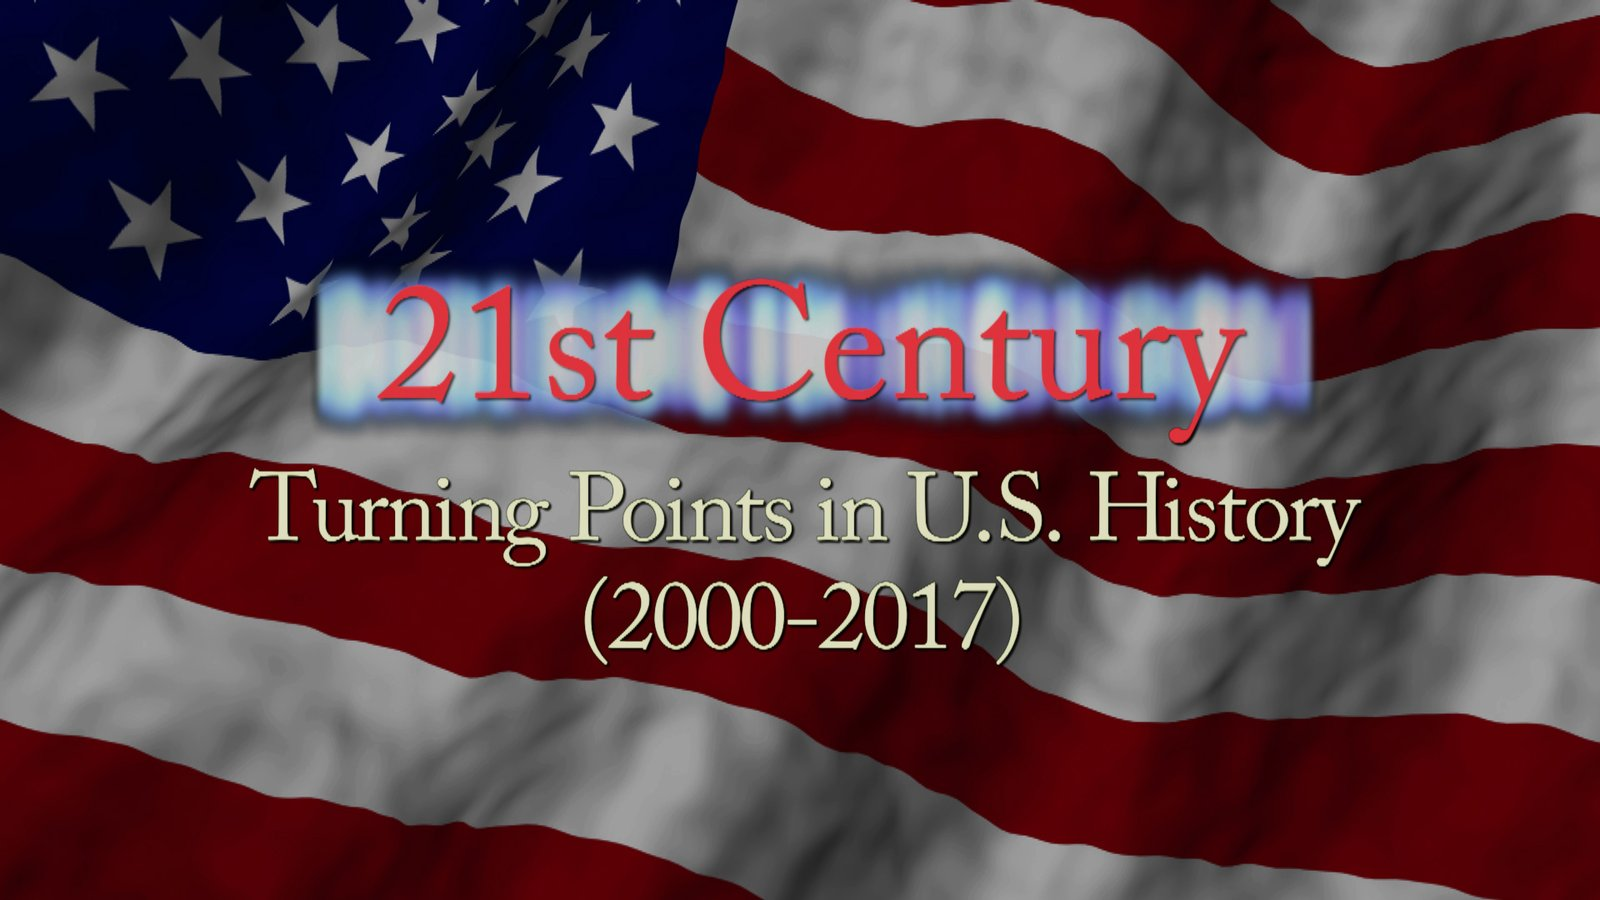 21st Century Turning Points in U.S. History (2000 - 2017) - An In-Depth Look at the Groundbreaking Events of the 21st Century